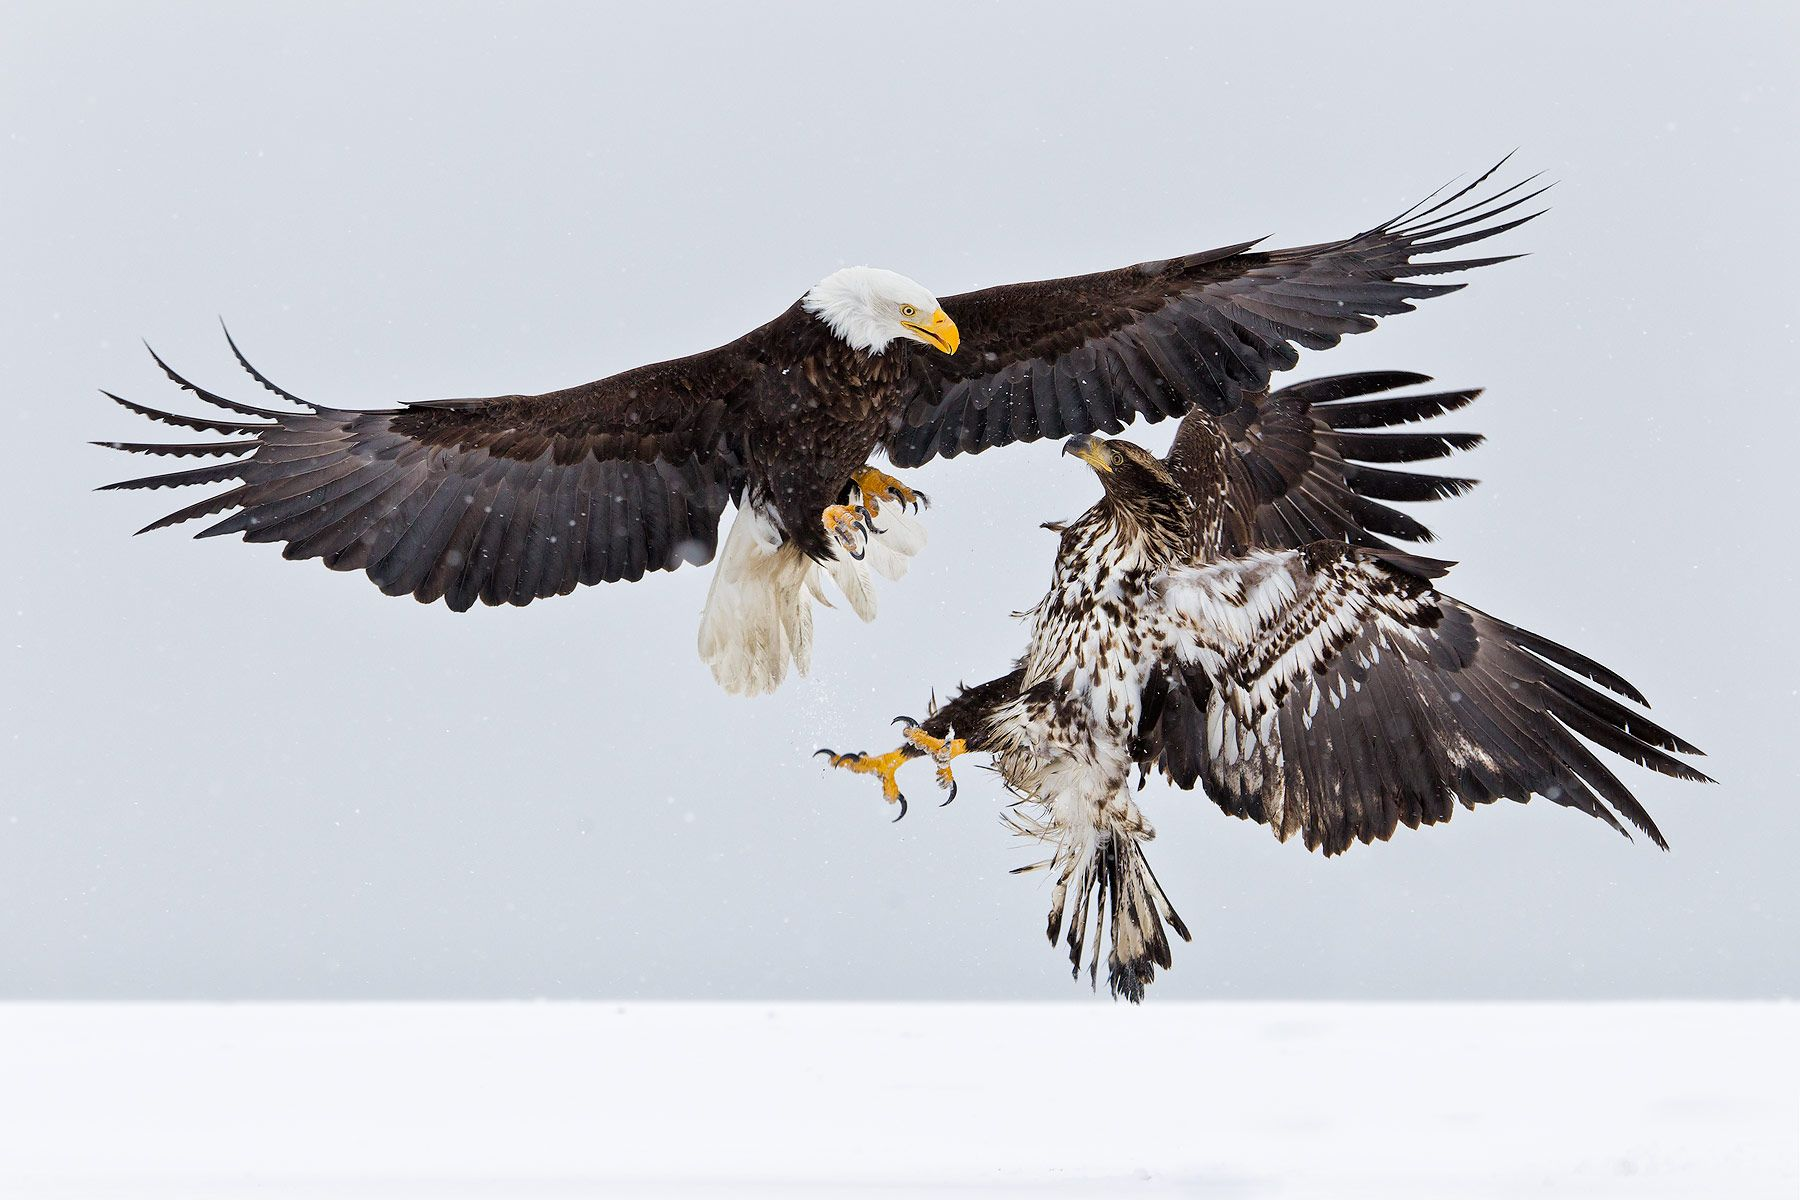 Bald-eagle-and-Juvenile-eagle-fighting-in-the-air-E07G9046-Kachemak-Bay,-Homer,-AK.jpg